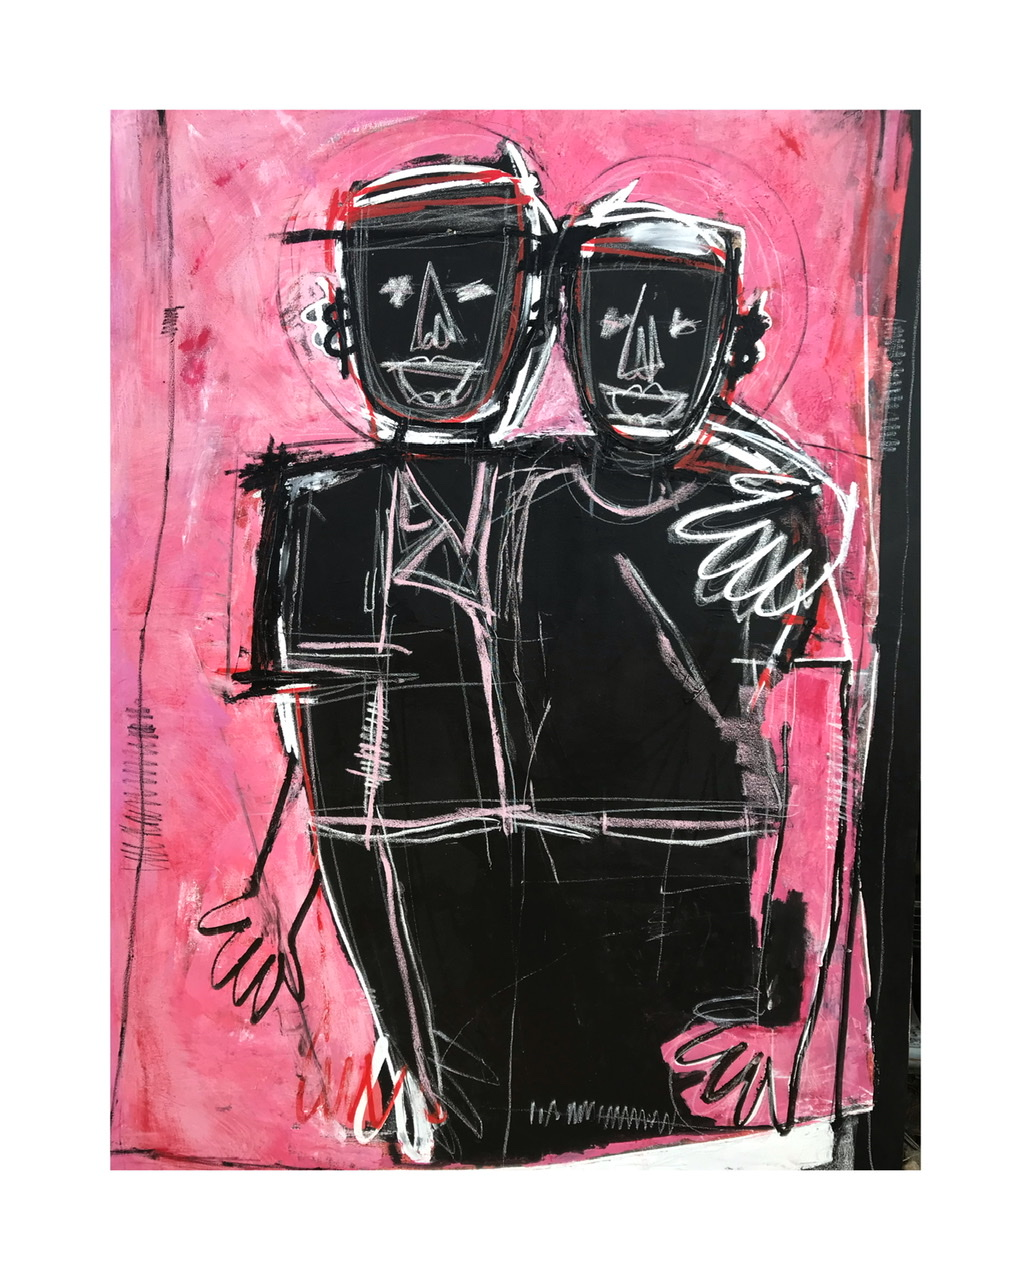 Friends I. Acrylic, oil and ink on canvas 7ftx5ft